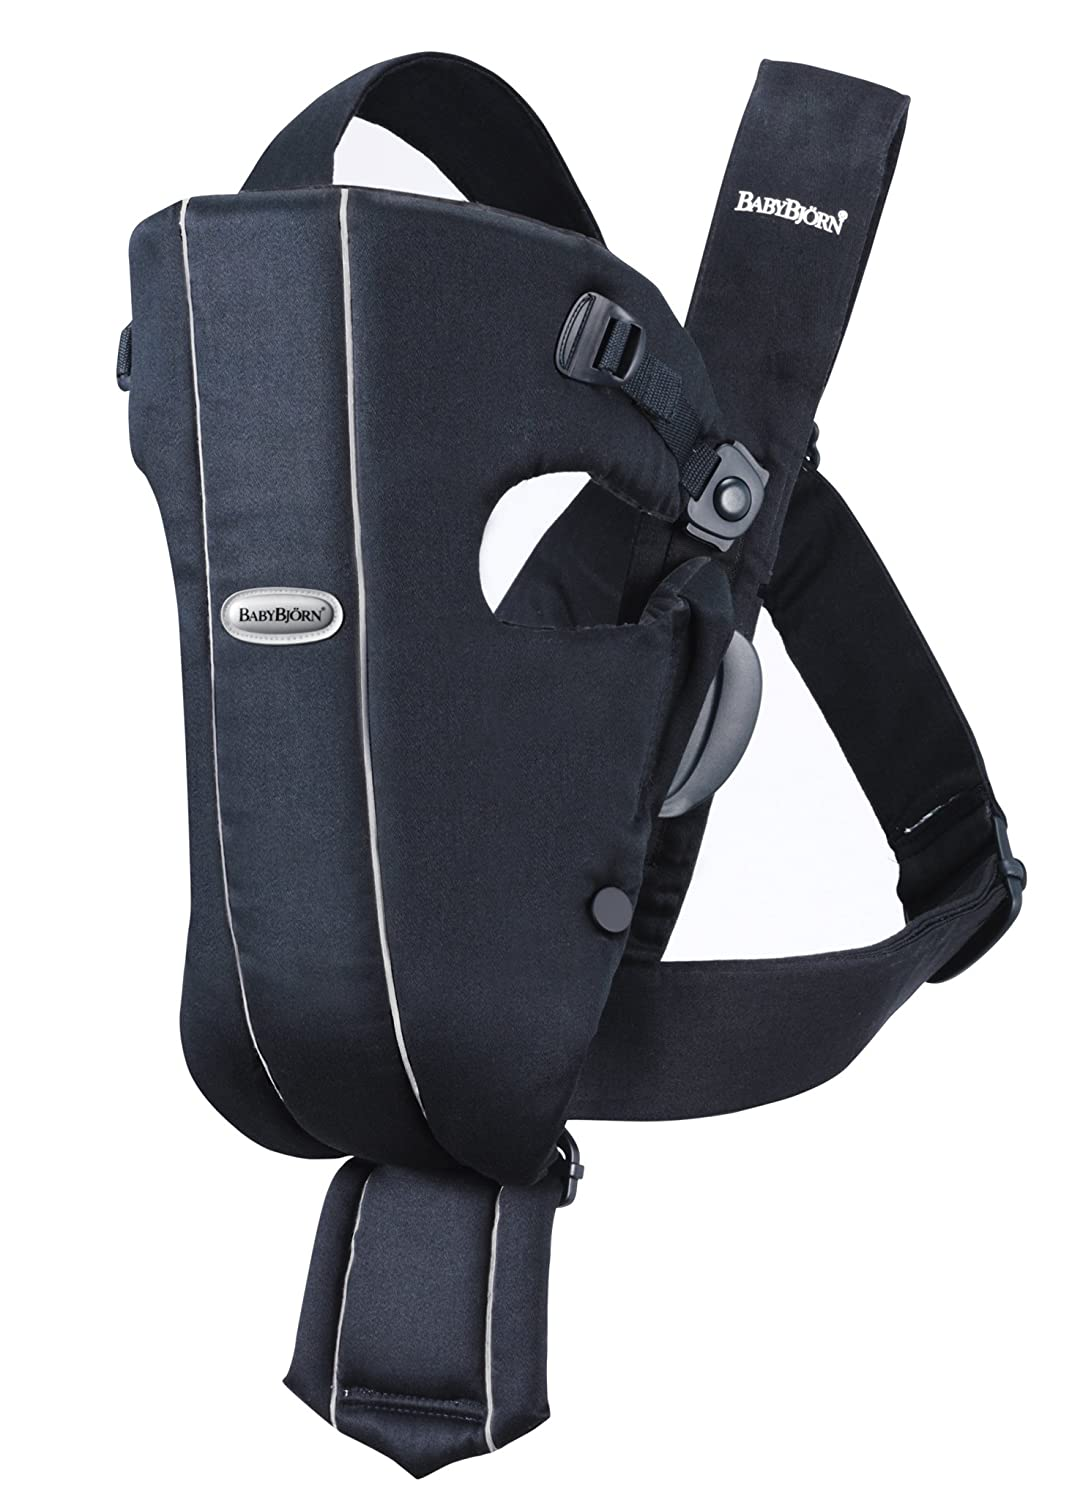 B000CSBP86 Baby Carrier Original - Dark Blue, Cotton 81jphMwM6rL